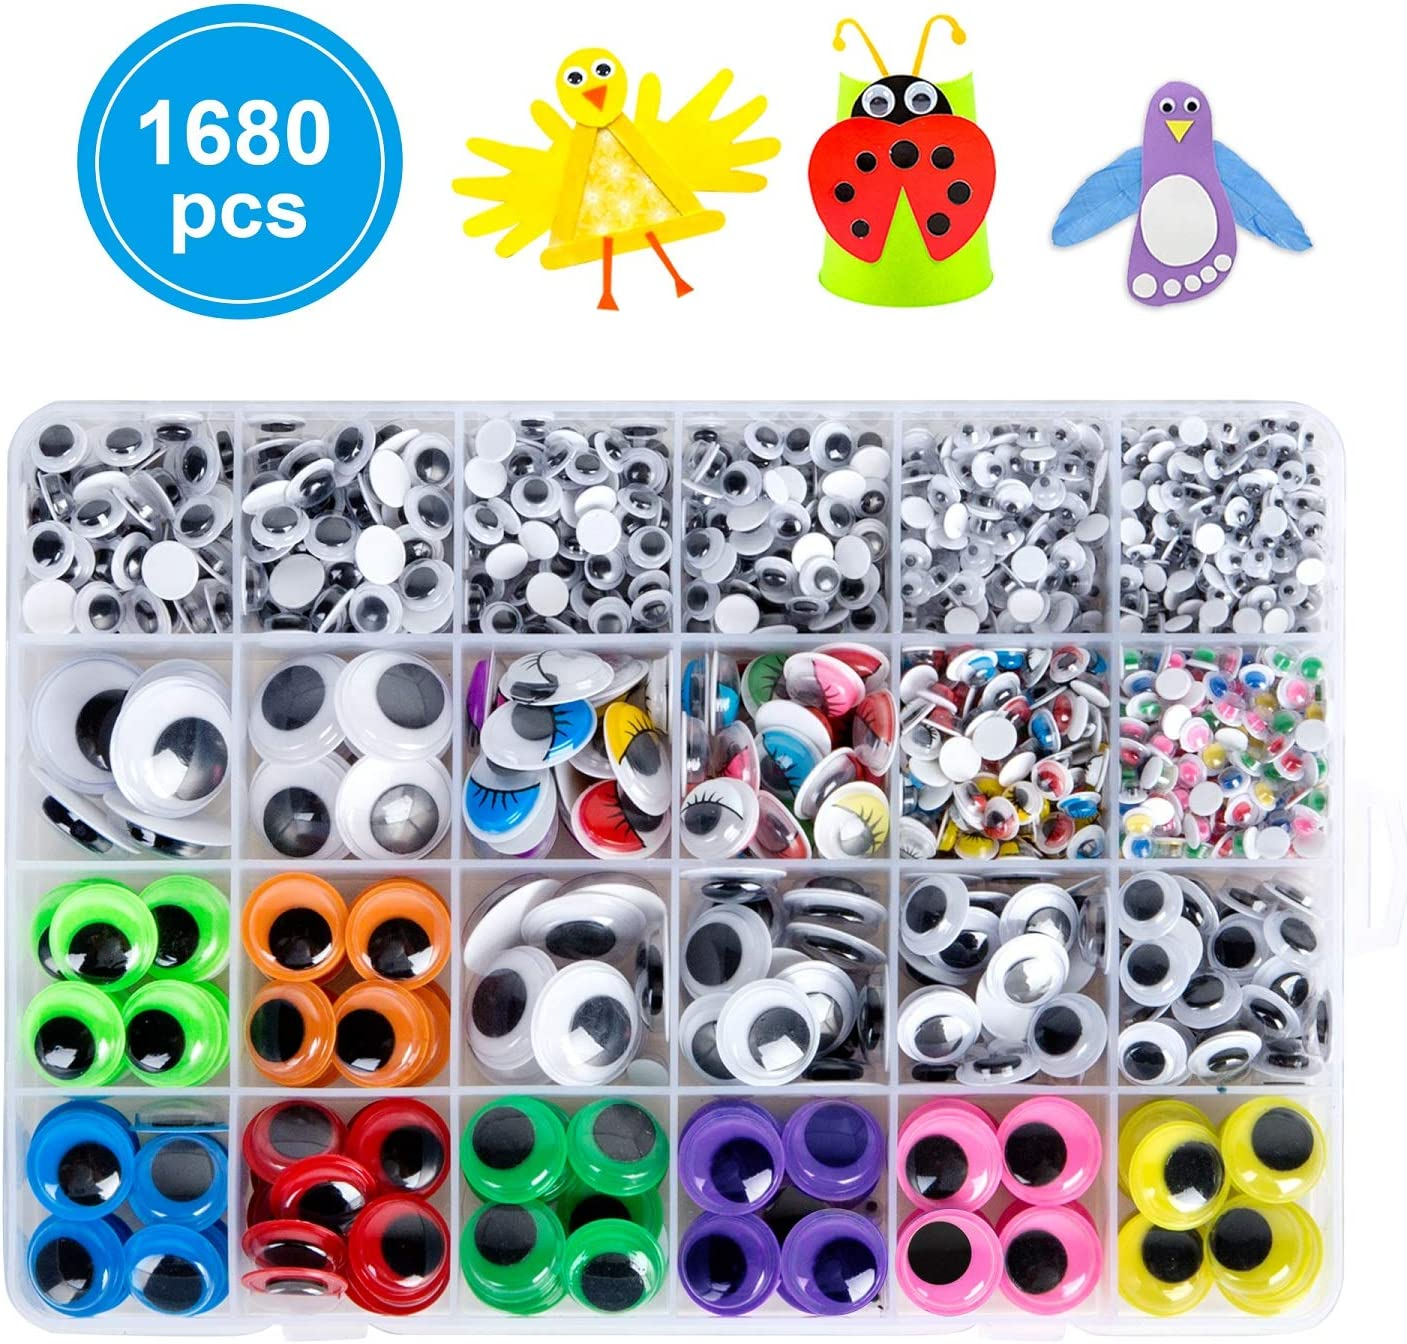 1680pcs Googly Wiggle Eyes Self Adhesive, for Craft Sticker Eyes Multi Colors and Sizes for DIY by ZZYI